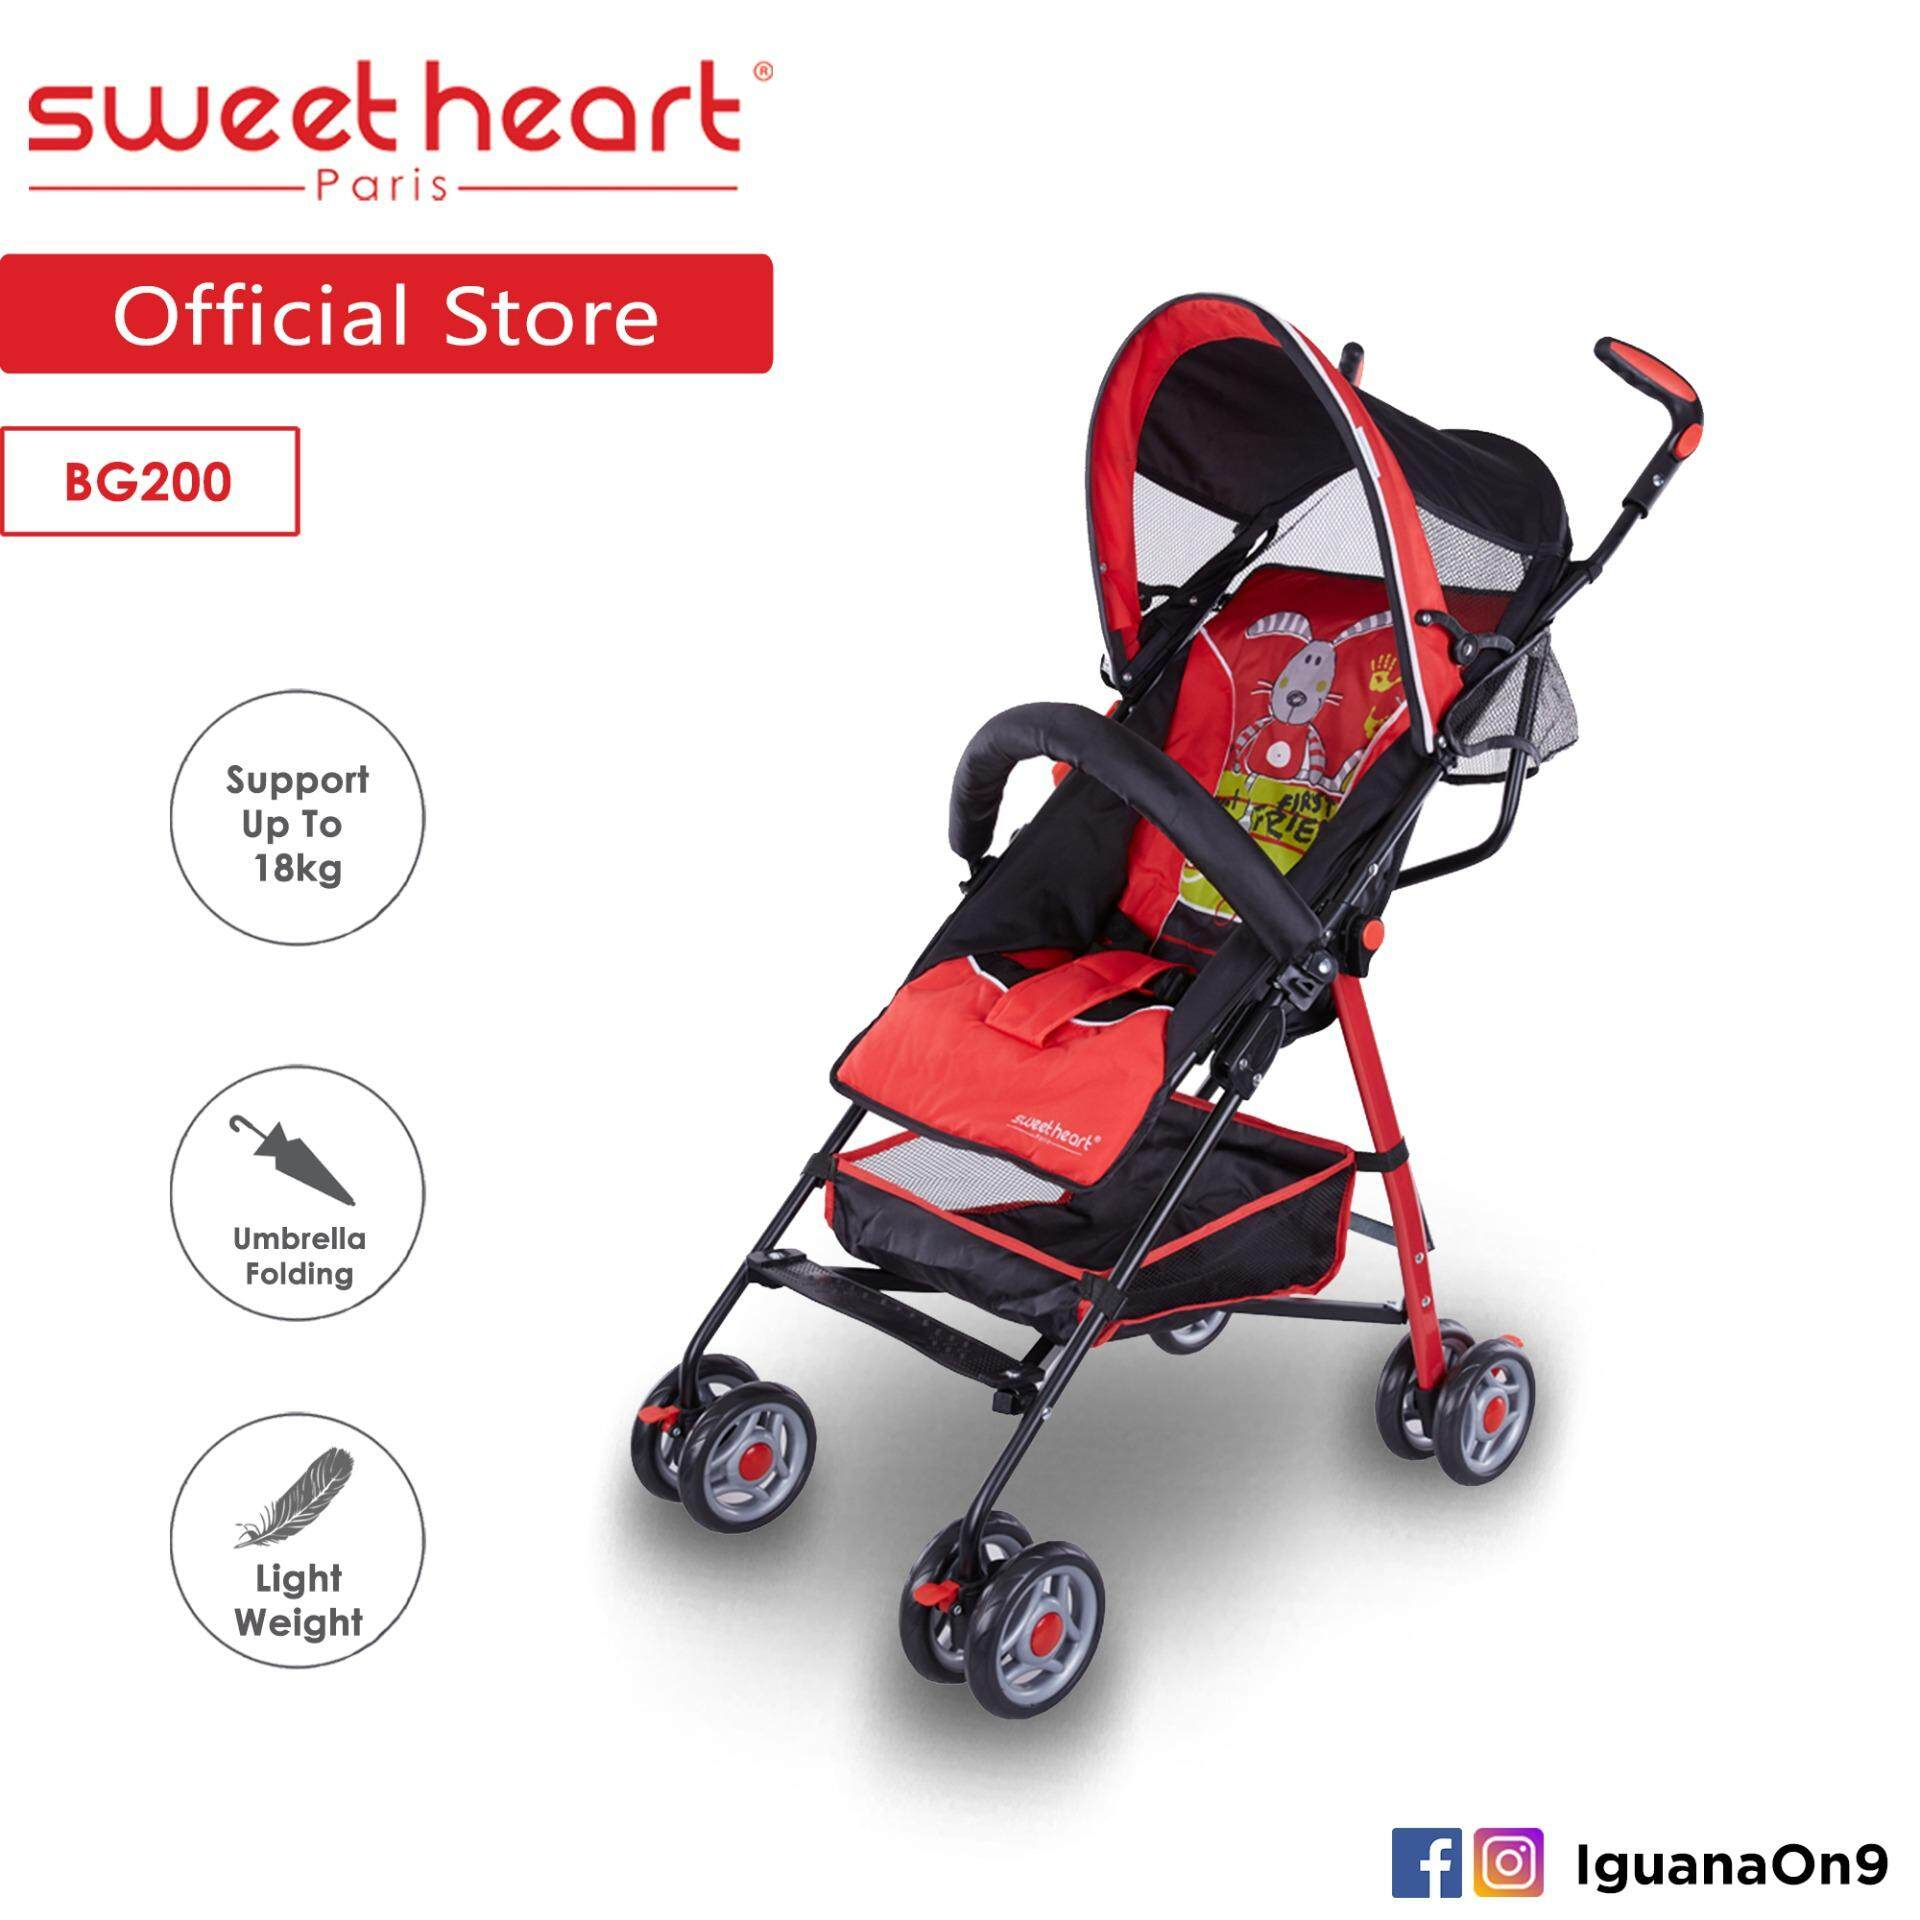 Sweet Heart Paris BG200 Umbrella Stroller Buggy (Red) with Steel Frame & Back-Rest Reclining